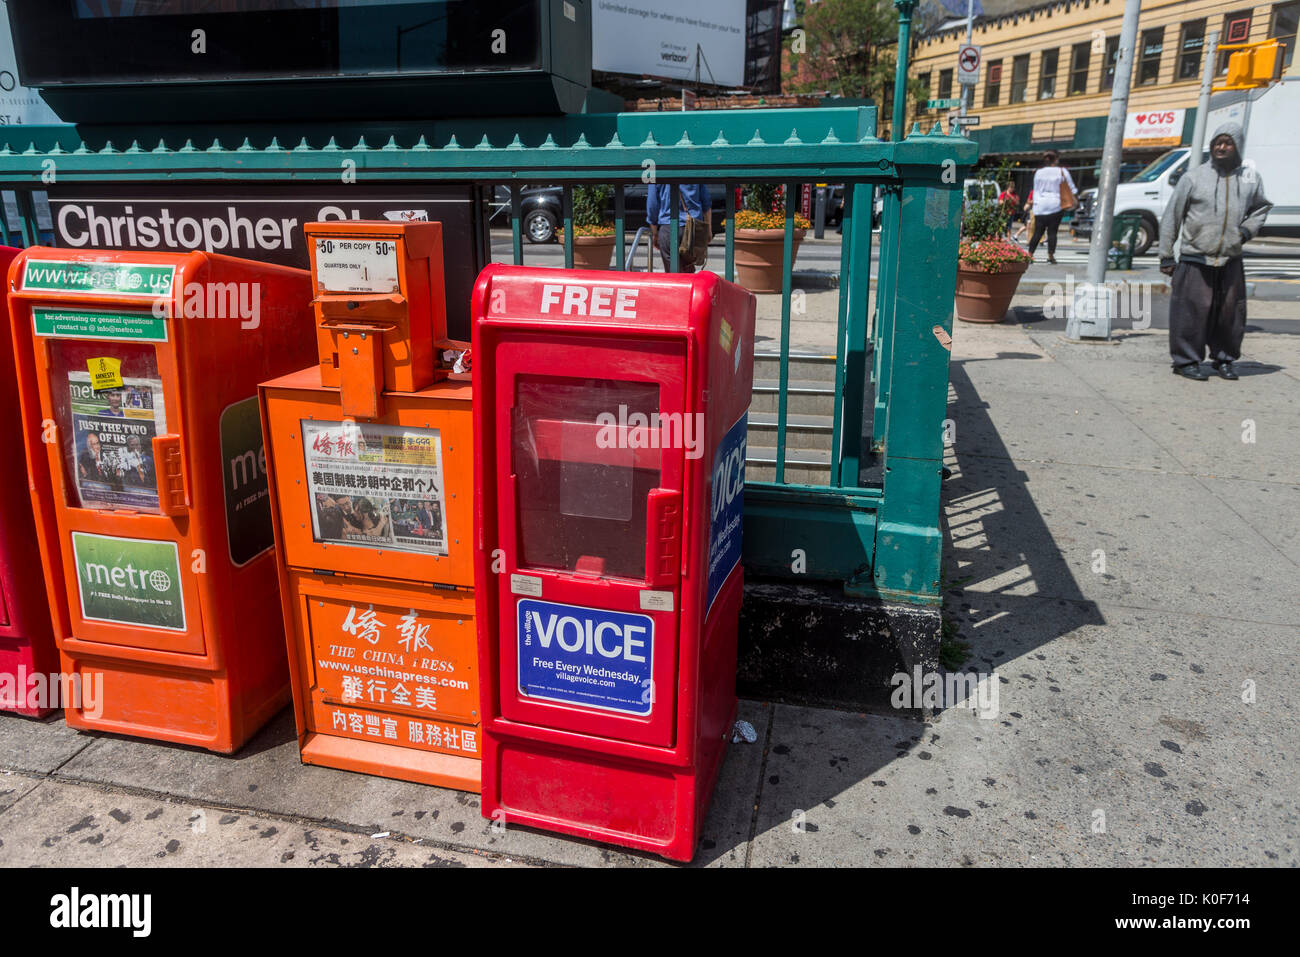 New York, NY, USA. 23rd Aug, 2017. An empty Village Voice newspaper box sadly waits in Sheridan Square to be refilled. On Tuesday, August 22, Peter D Barbey announced the 62 year old alternative weekly newspaper would cease publication of its print edition. An online edition will still be available via the internet CREDIT: Credit: Stacy Walsh Rosenstock/Alamy Live News - Stock Image